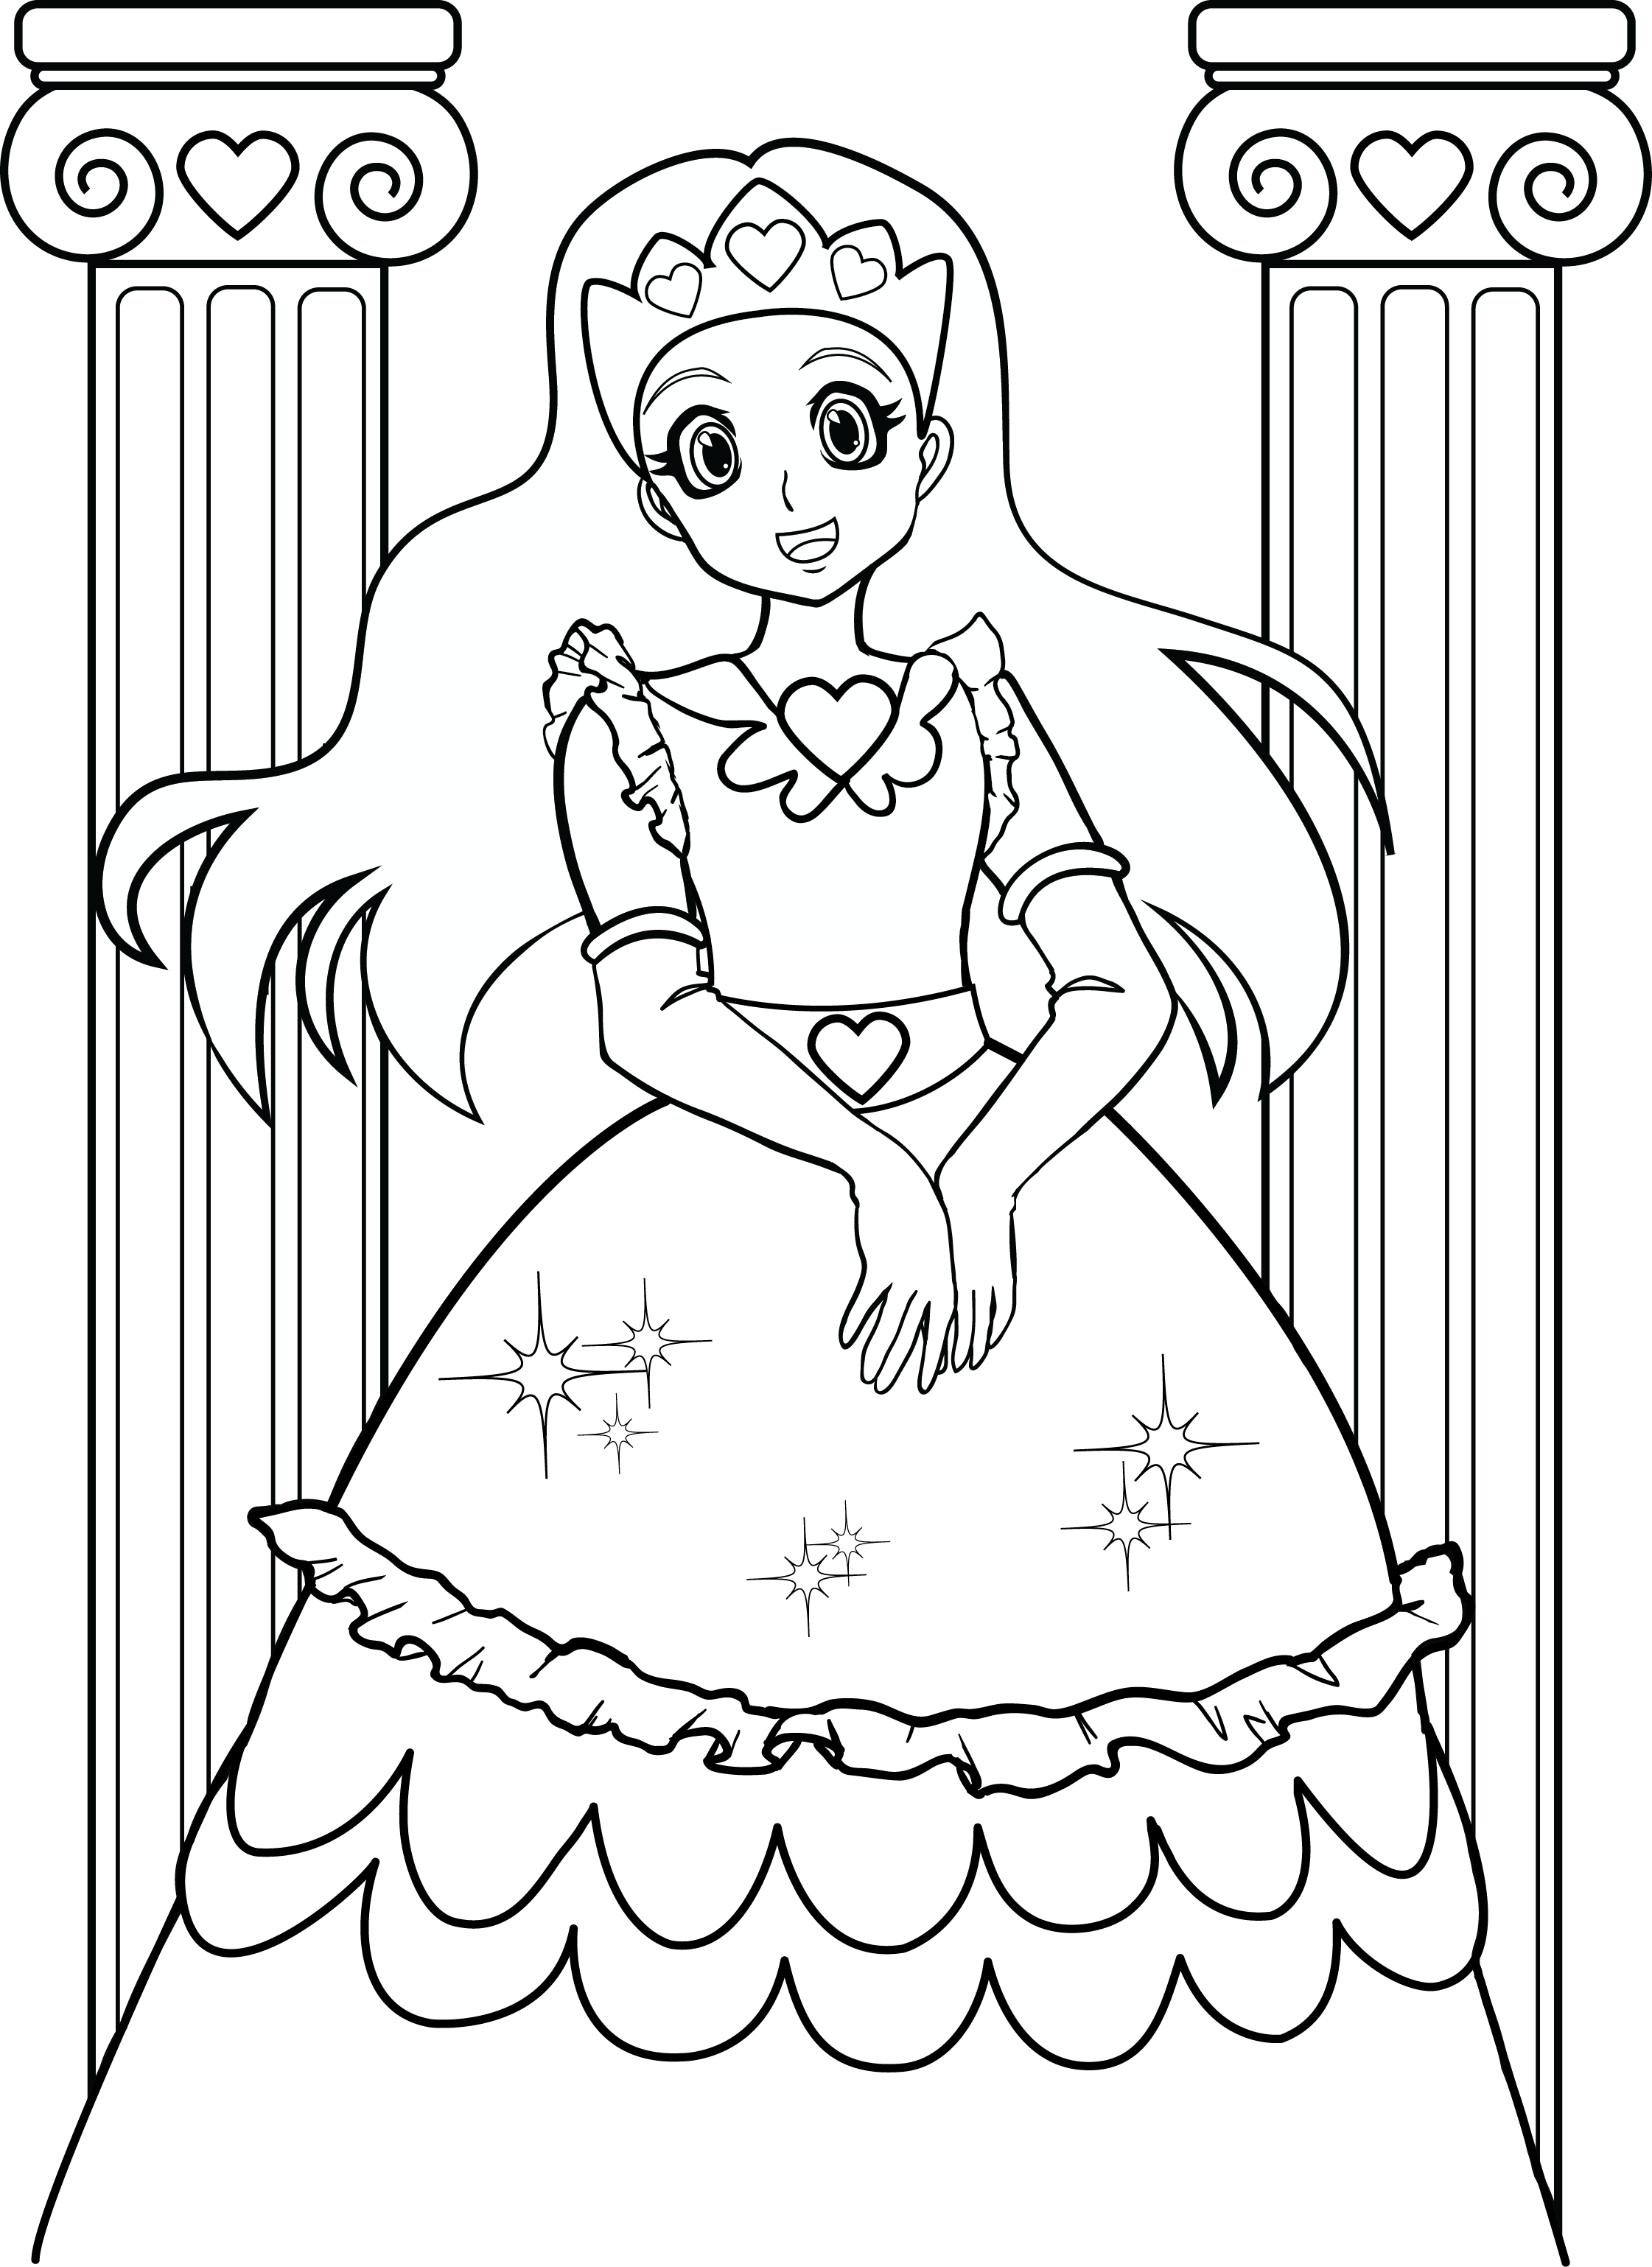 Coloring pages for girls 7 coloring kids for Fun coloring pages for girls